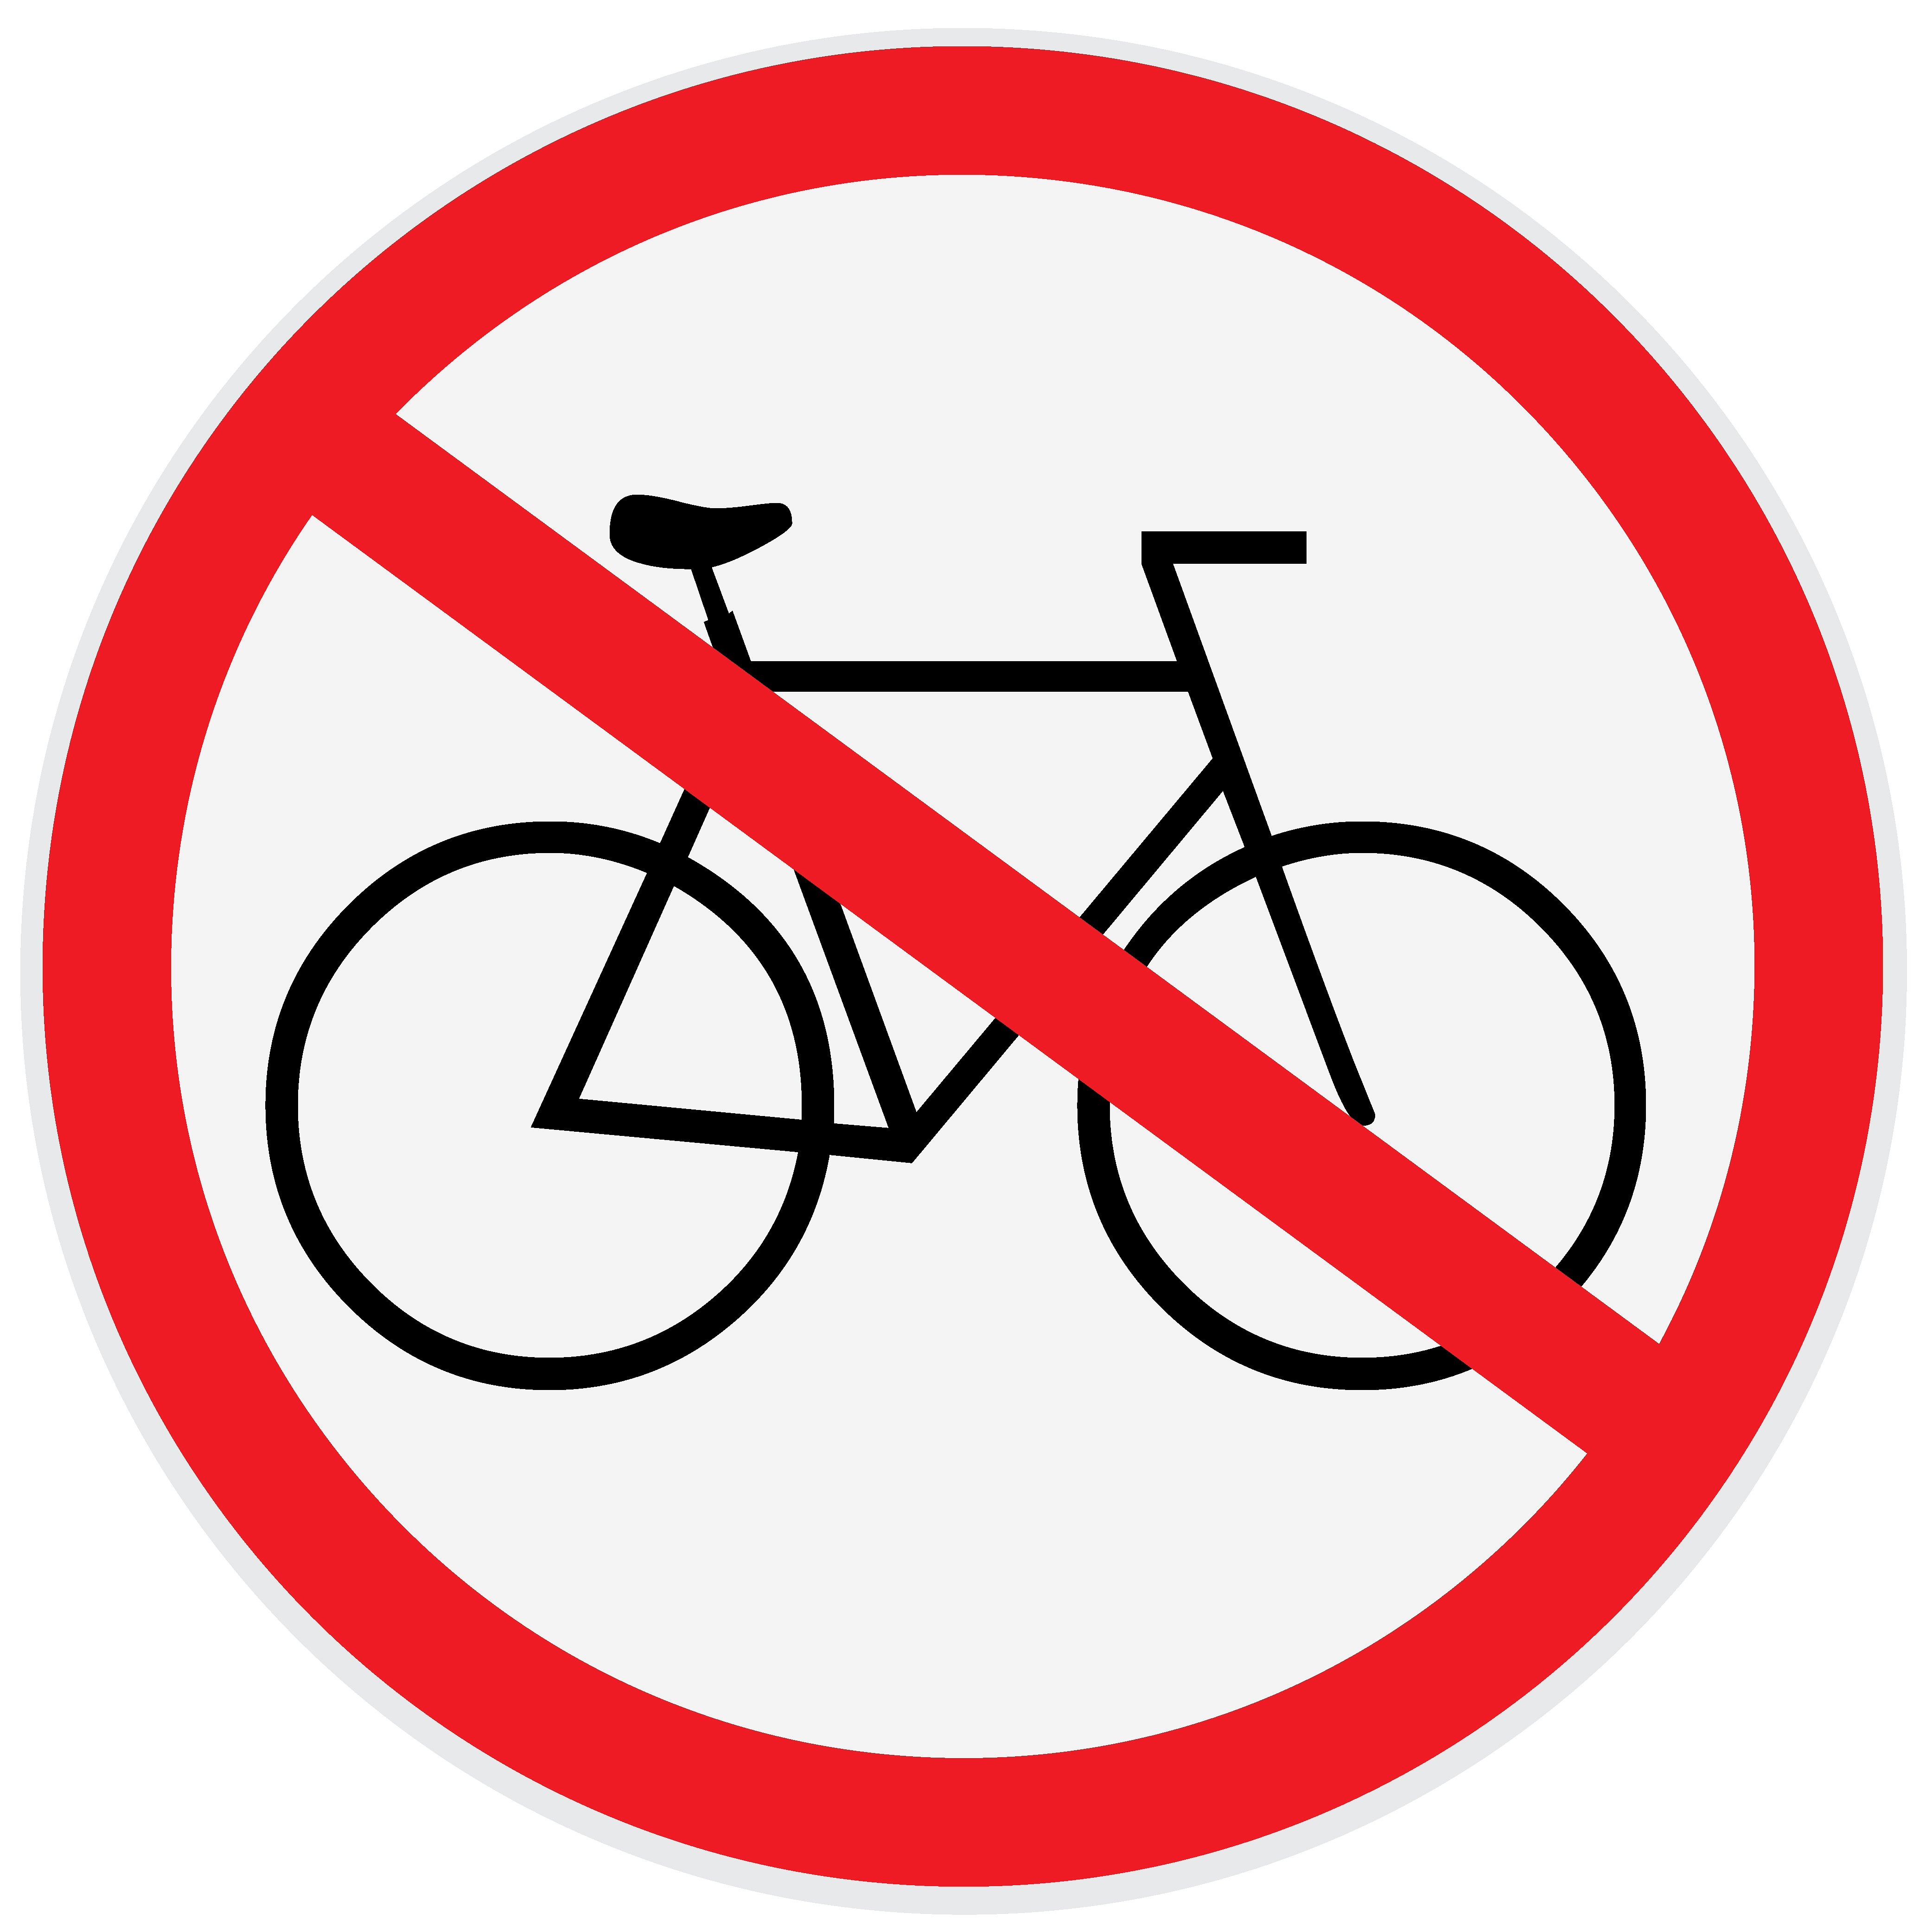 No bicycles allowed photo